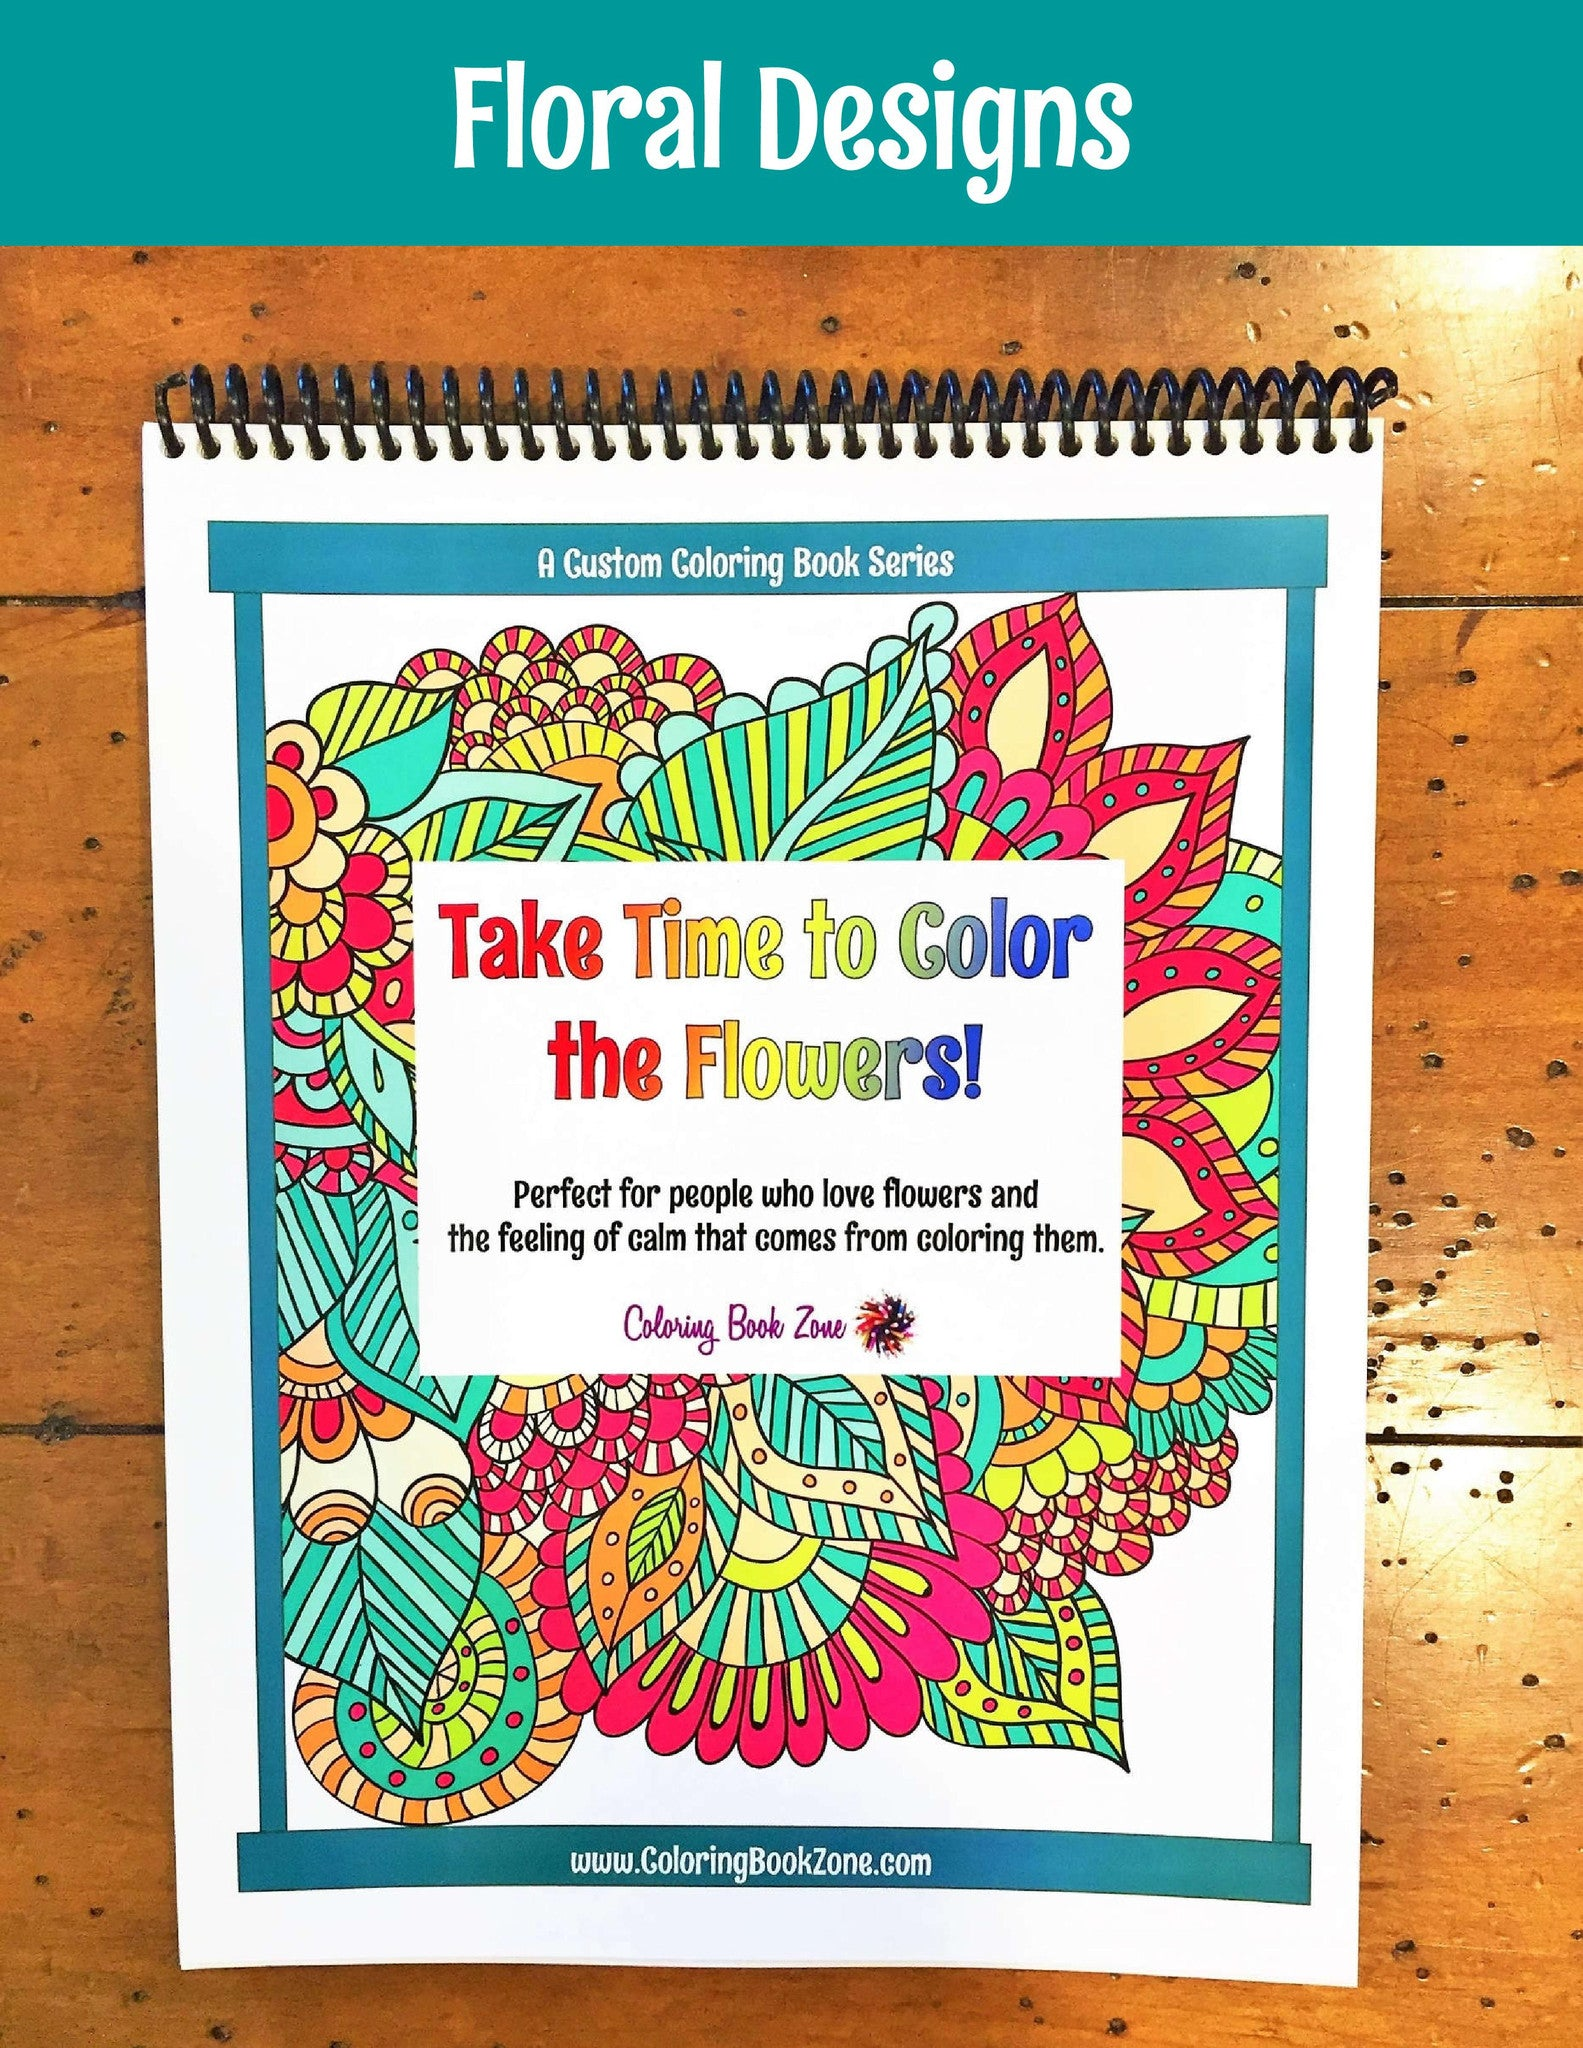 Zendoodle coloring enchanting gardens - Take Time To Color The Flowers Coloring Book Live Your Life In Color Series